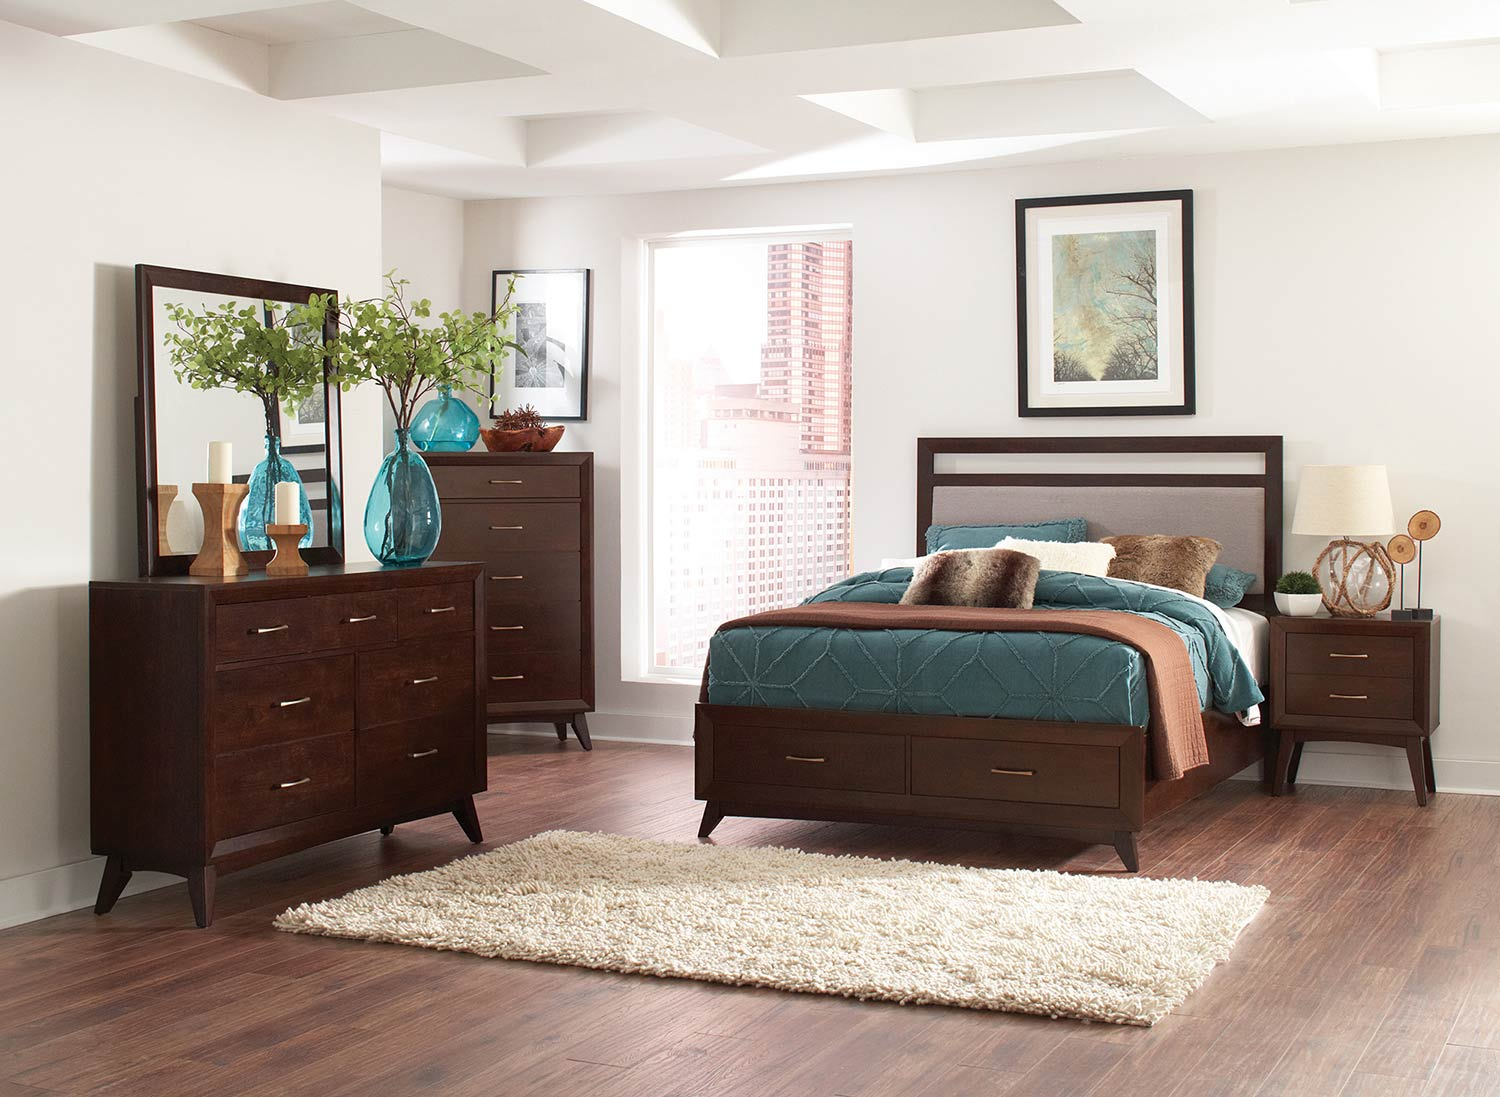 Coaster Carrington Bedroom Set - Coffee